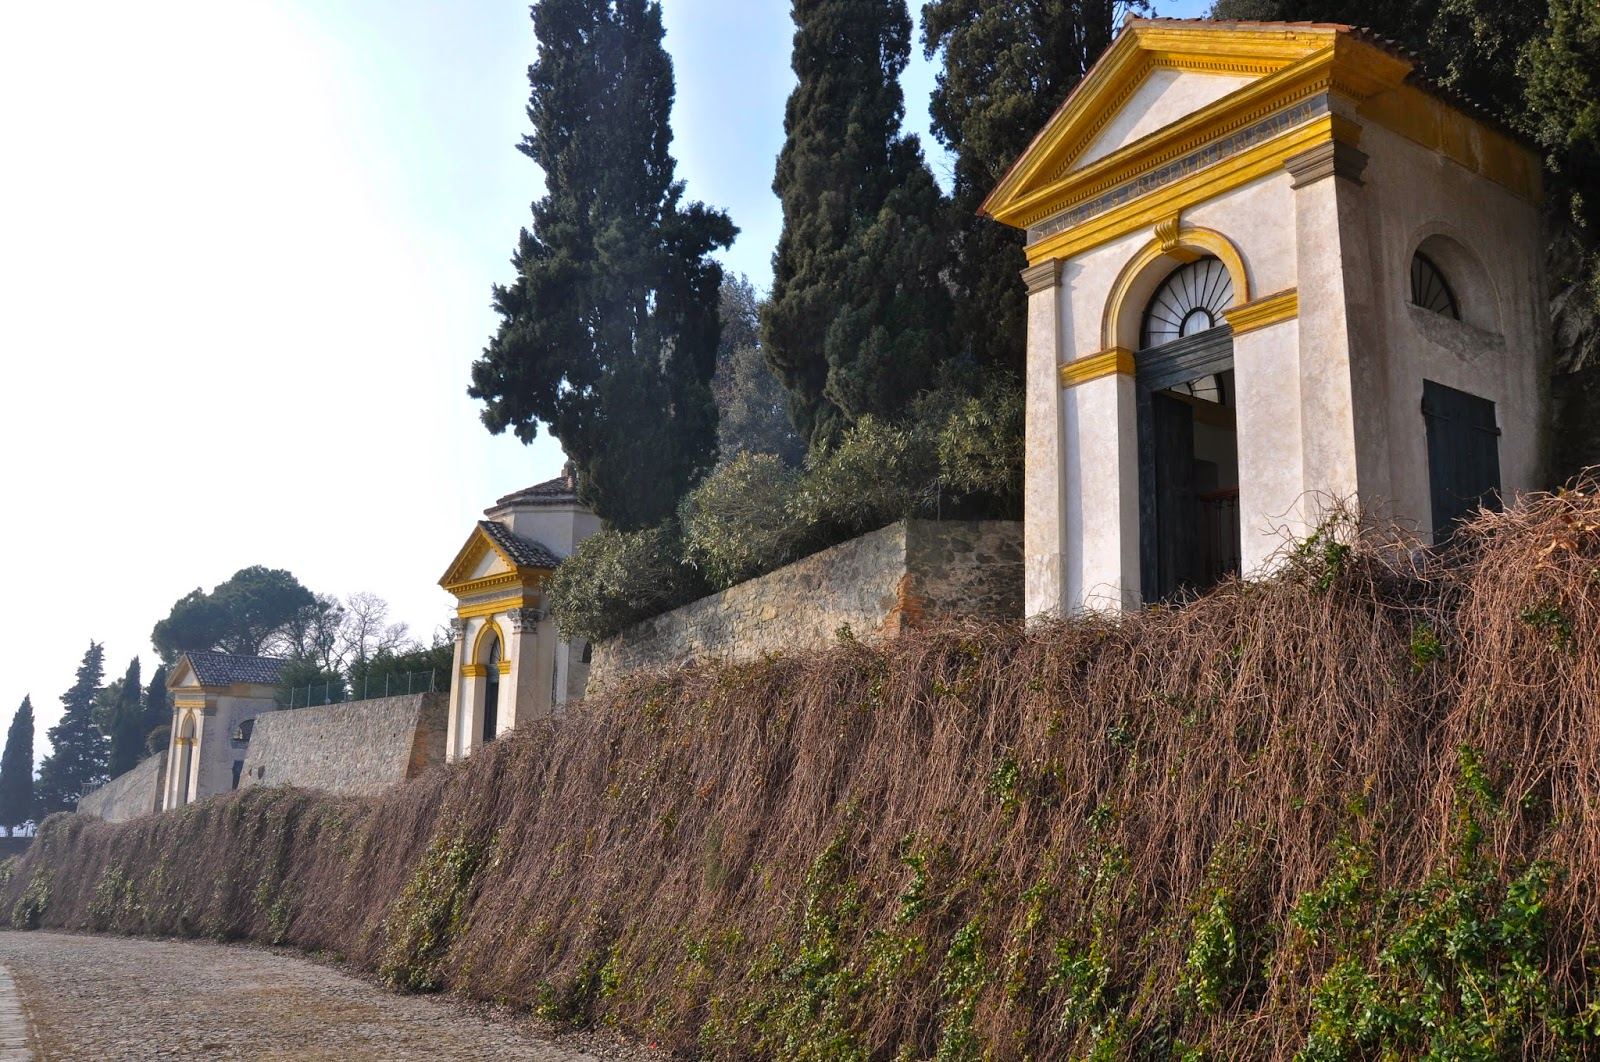 The Seven Churches Sanctuary in Monselice, Euganean Hills, Veneto, Italy - www.rossiwrites.com